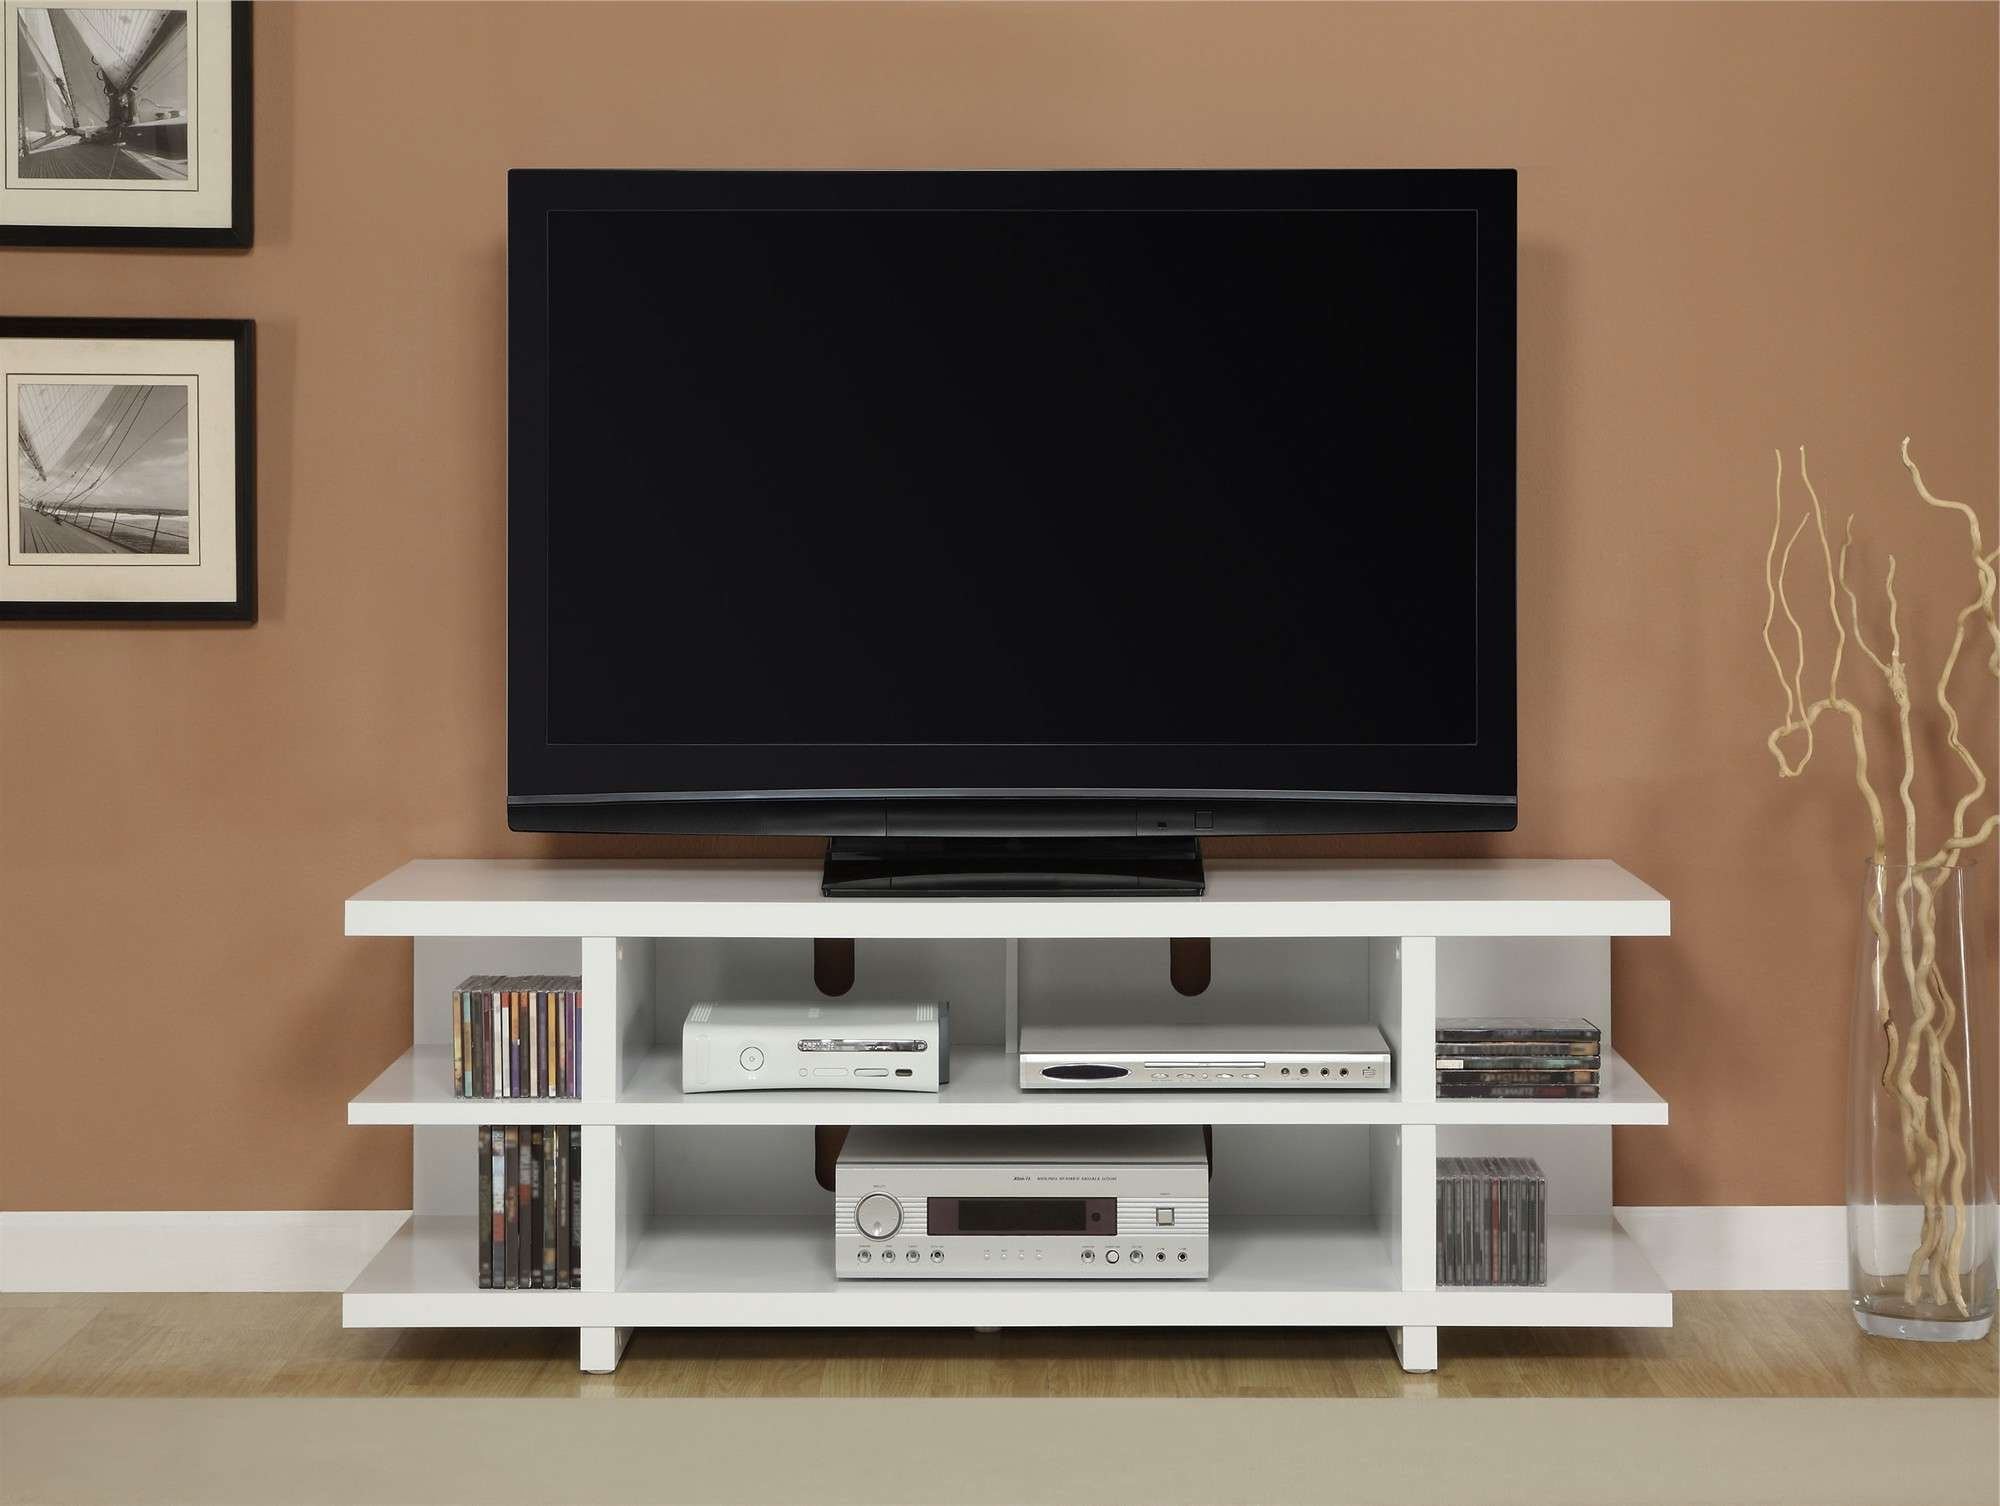 White Stained Wooden Tv Stand Having Several Open Shelves For In Modern Tv Stands For Flat Screens (View 15 of 15)